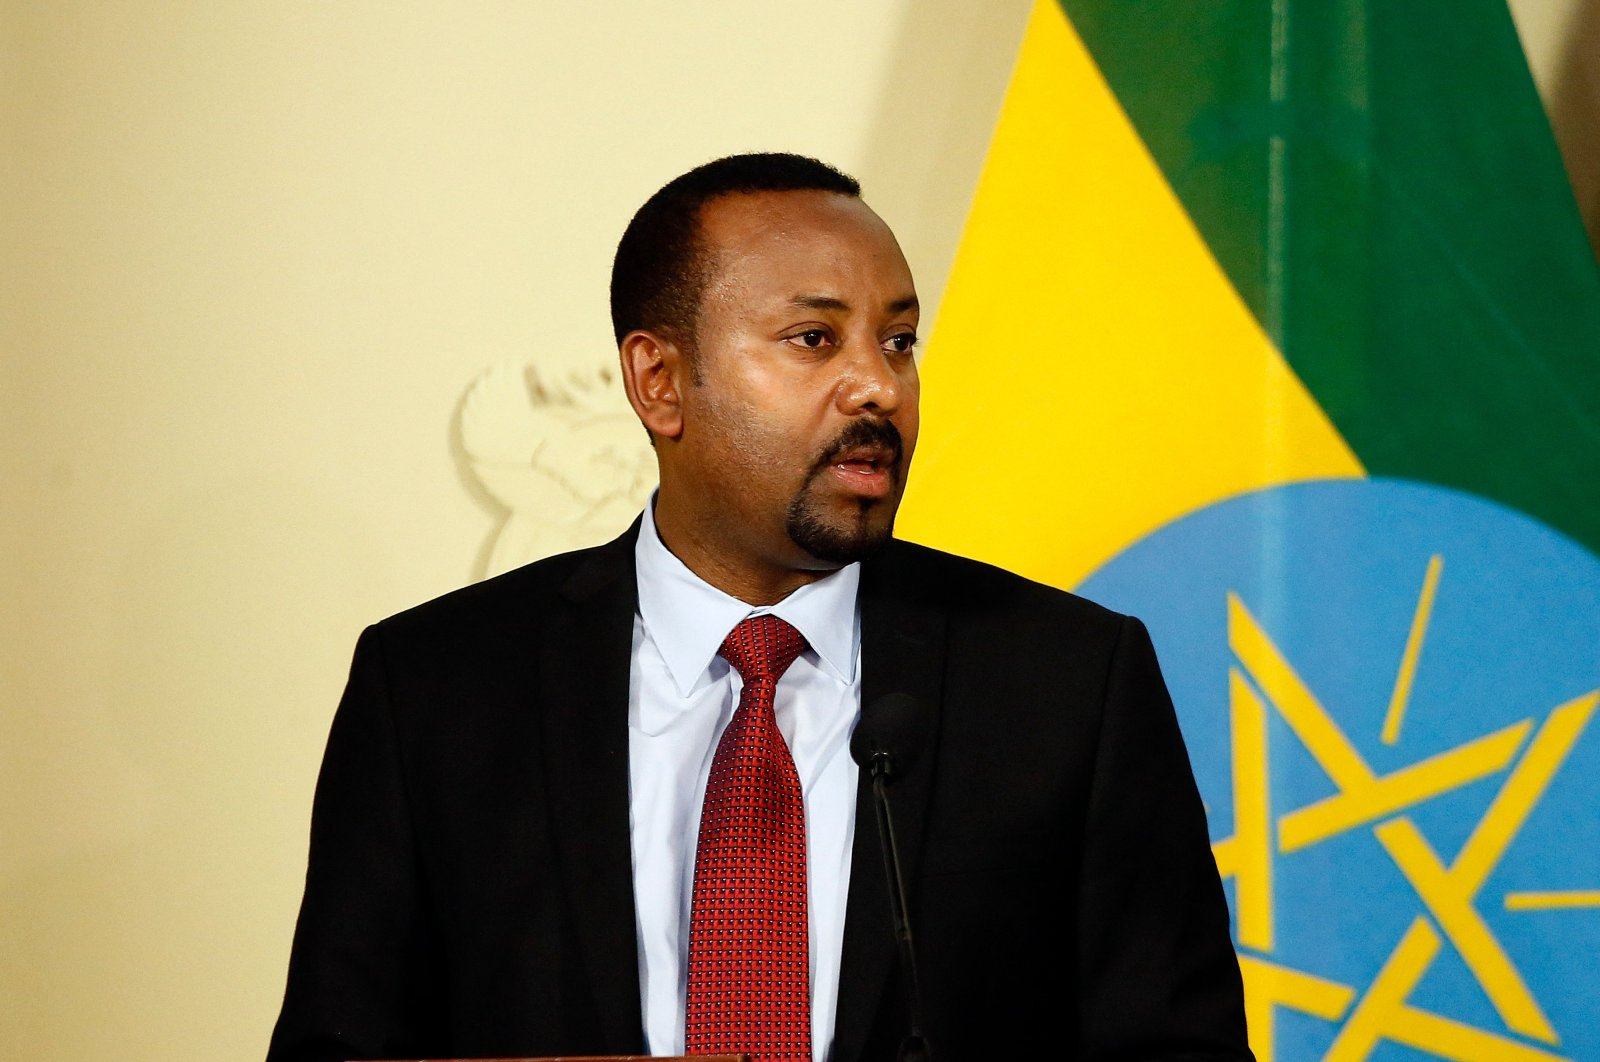 Prime Minister of Ethiopia Abiy Ahmed Ali speaks during a press conference with the South African president at the Union Buildings in Pretoria, South Africa, Jan. 12, 2020. (AFP Photo)